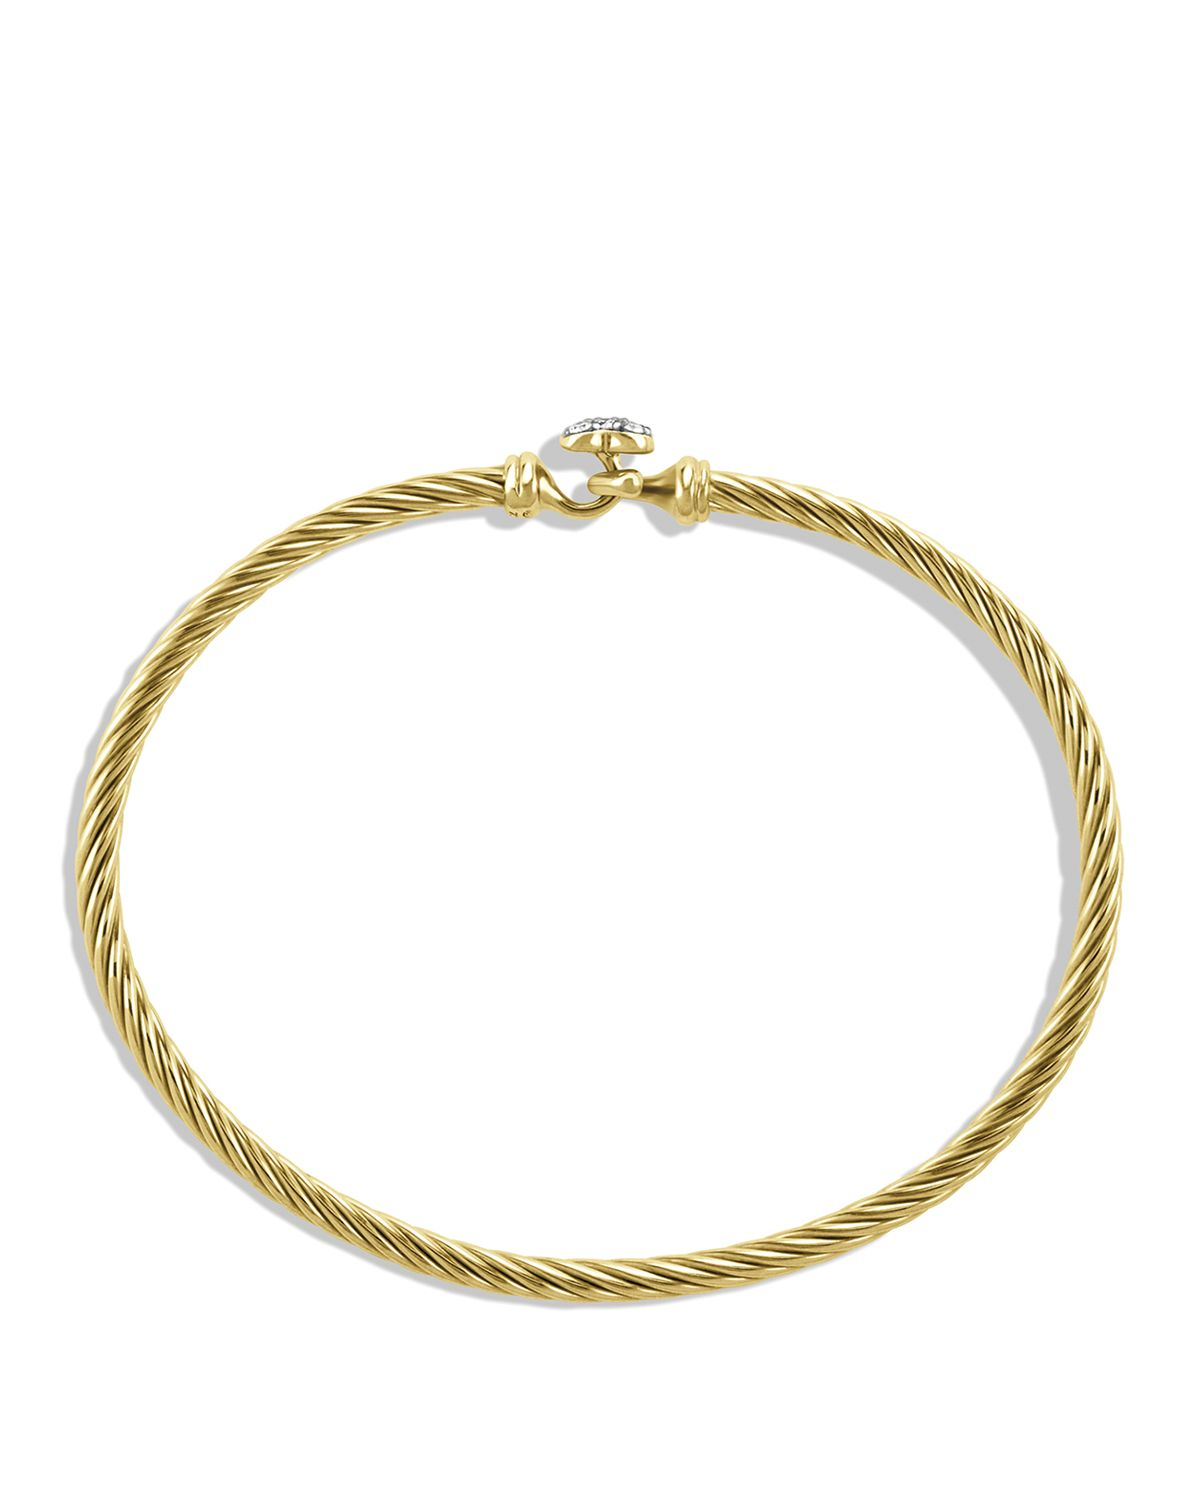 Replica David Yurman Cable Bracelet - Collectible Crystal ...